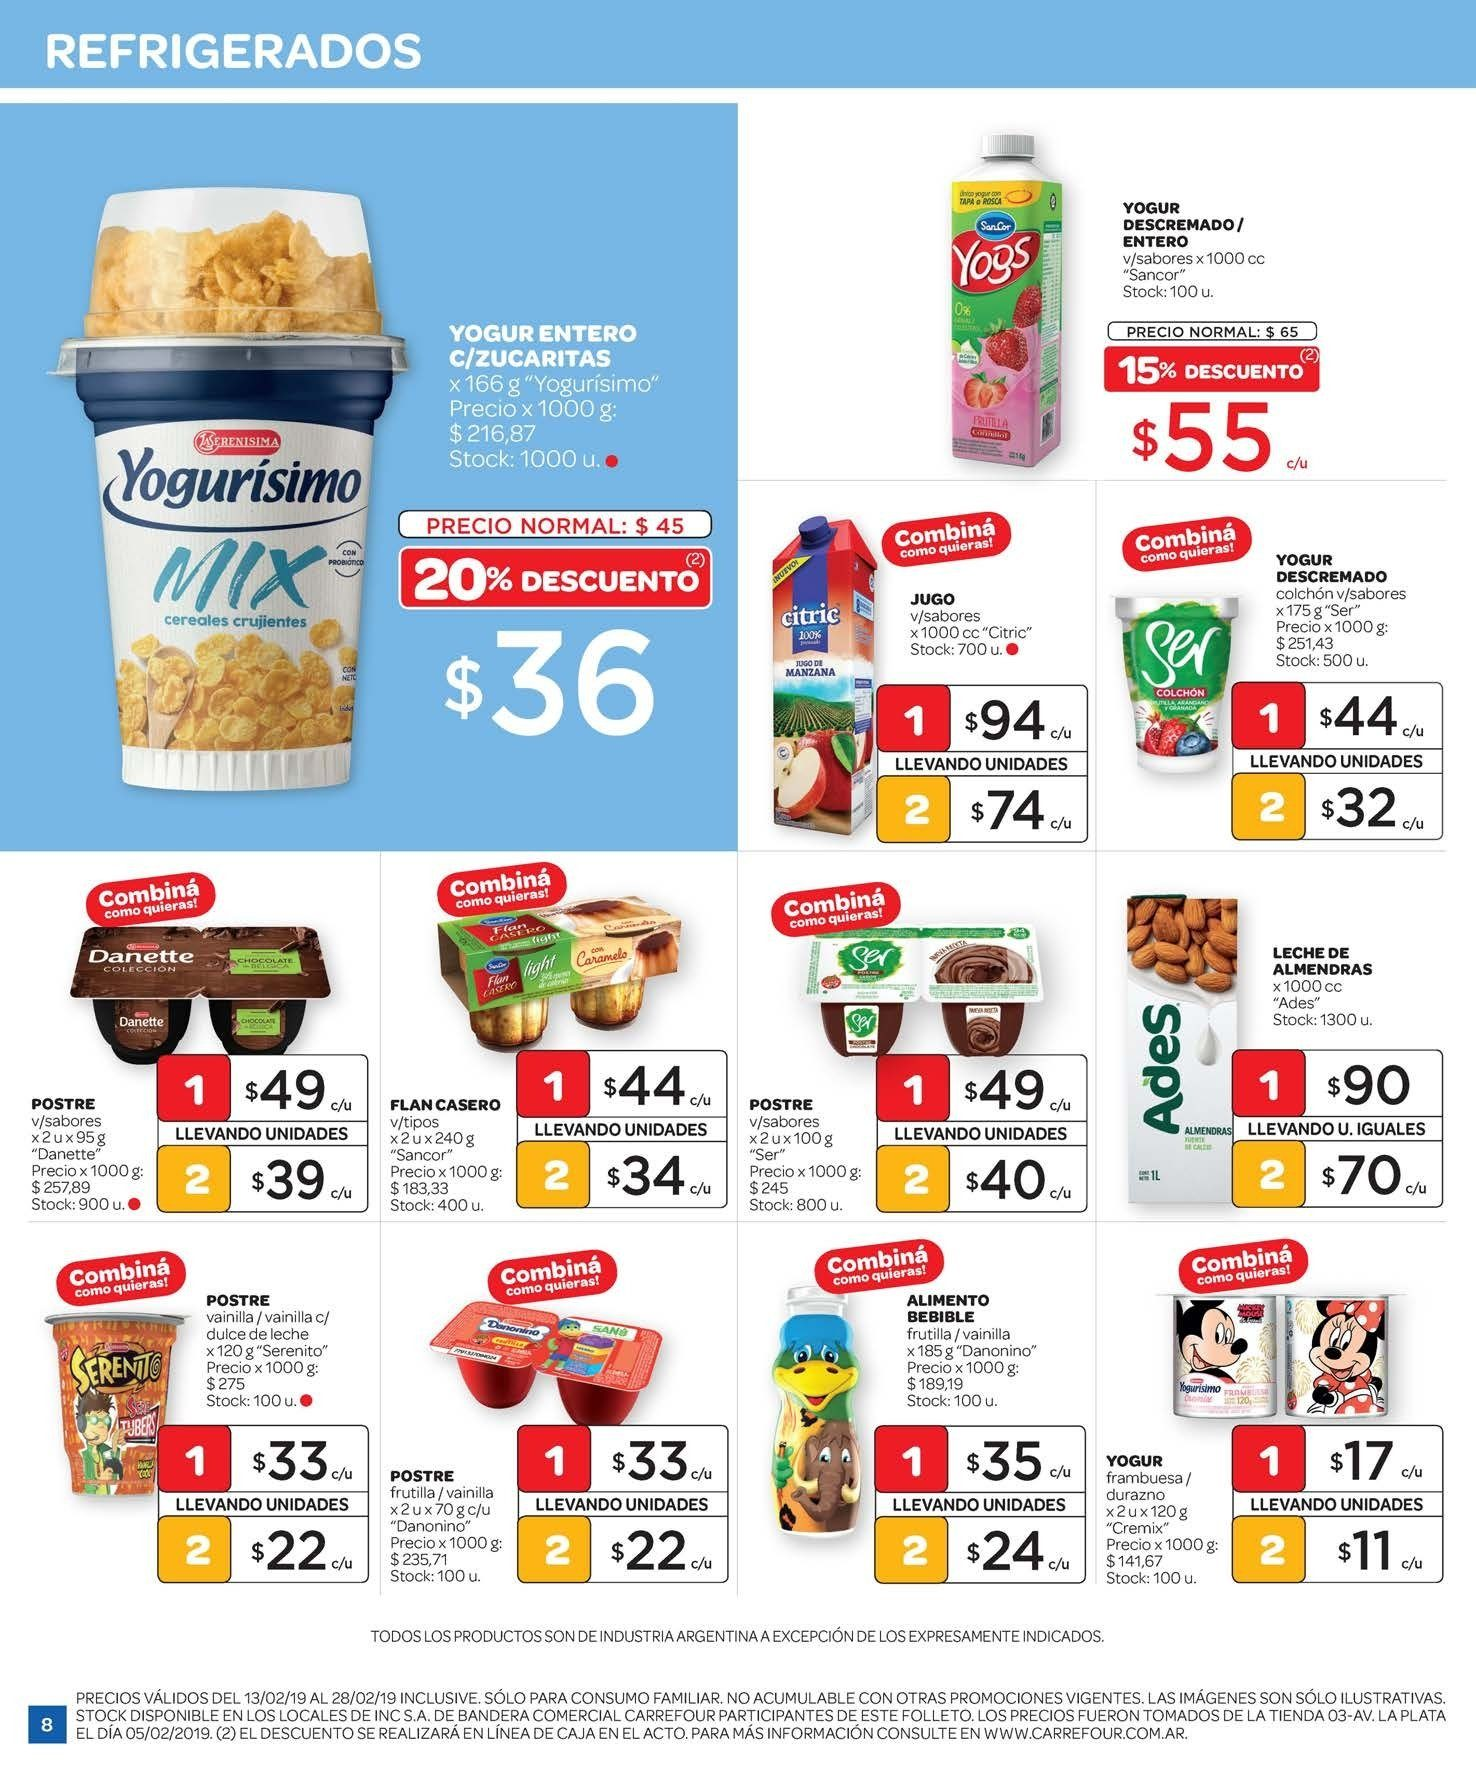 Folleto actual Carrefour - 13.2.2019 - 28.2.2019 - Ventas - yogur 719e831790d5